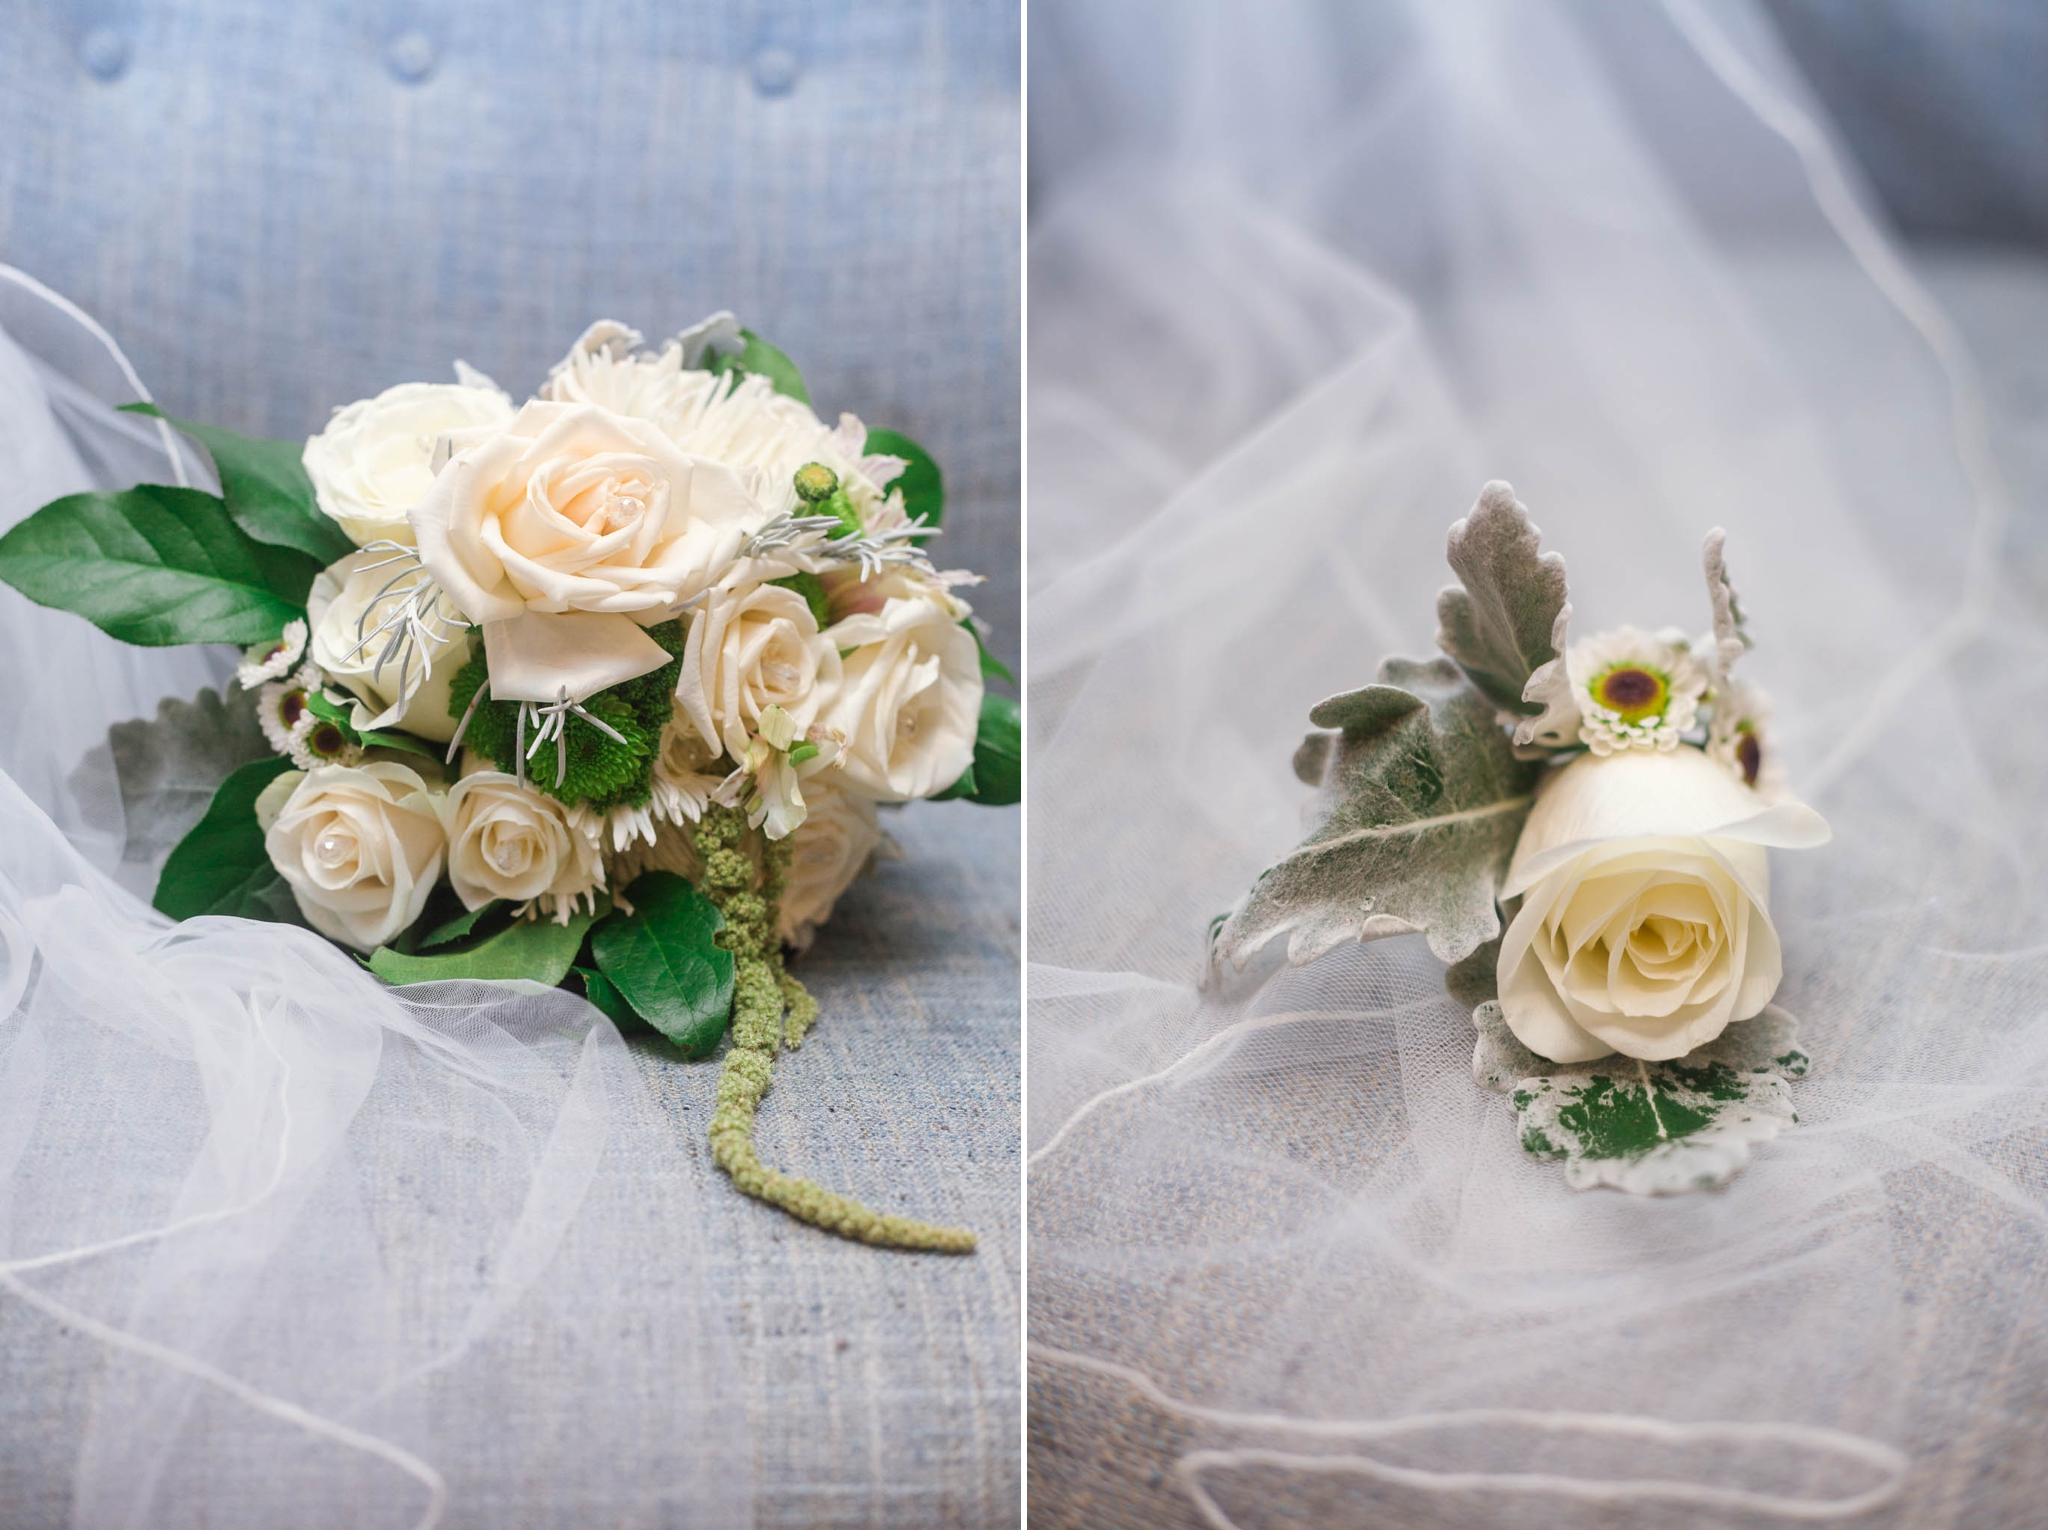 Bridal Bouquet - Dona + Doug - MacGregor Downs Country Club in Cary, NC - Raleigh Wedding Photographer